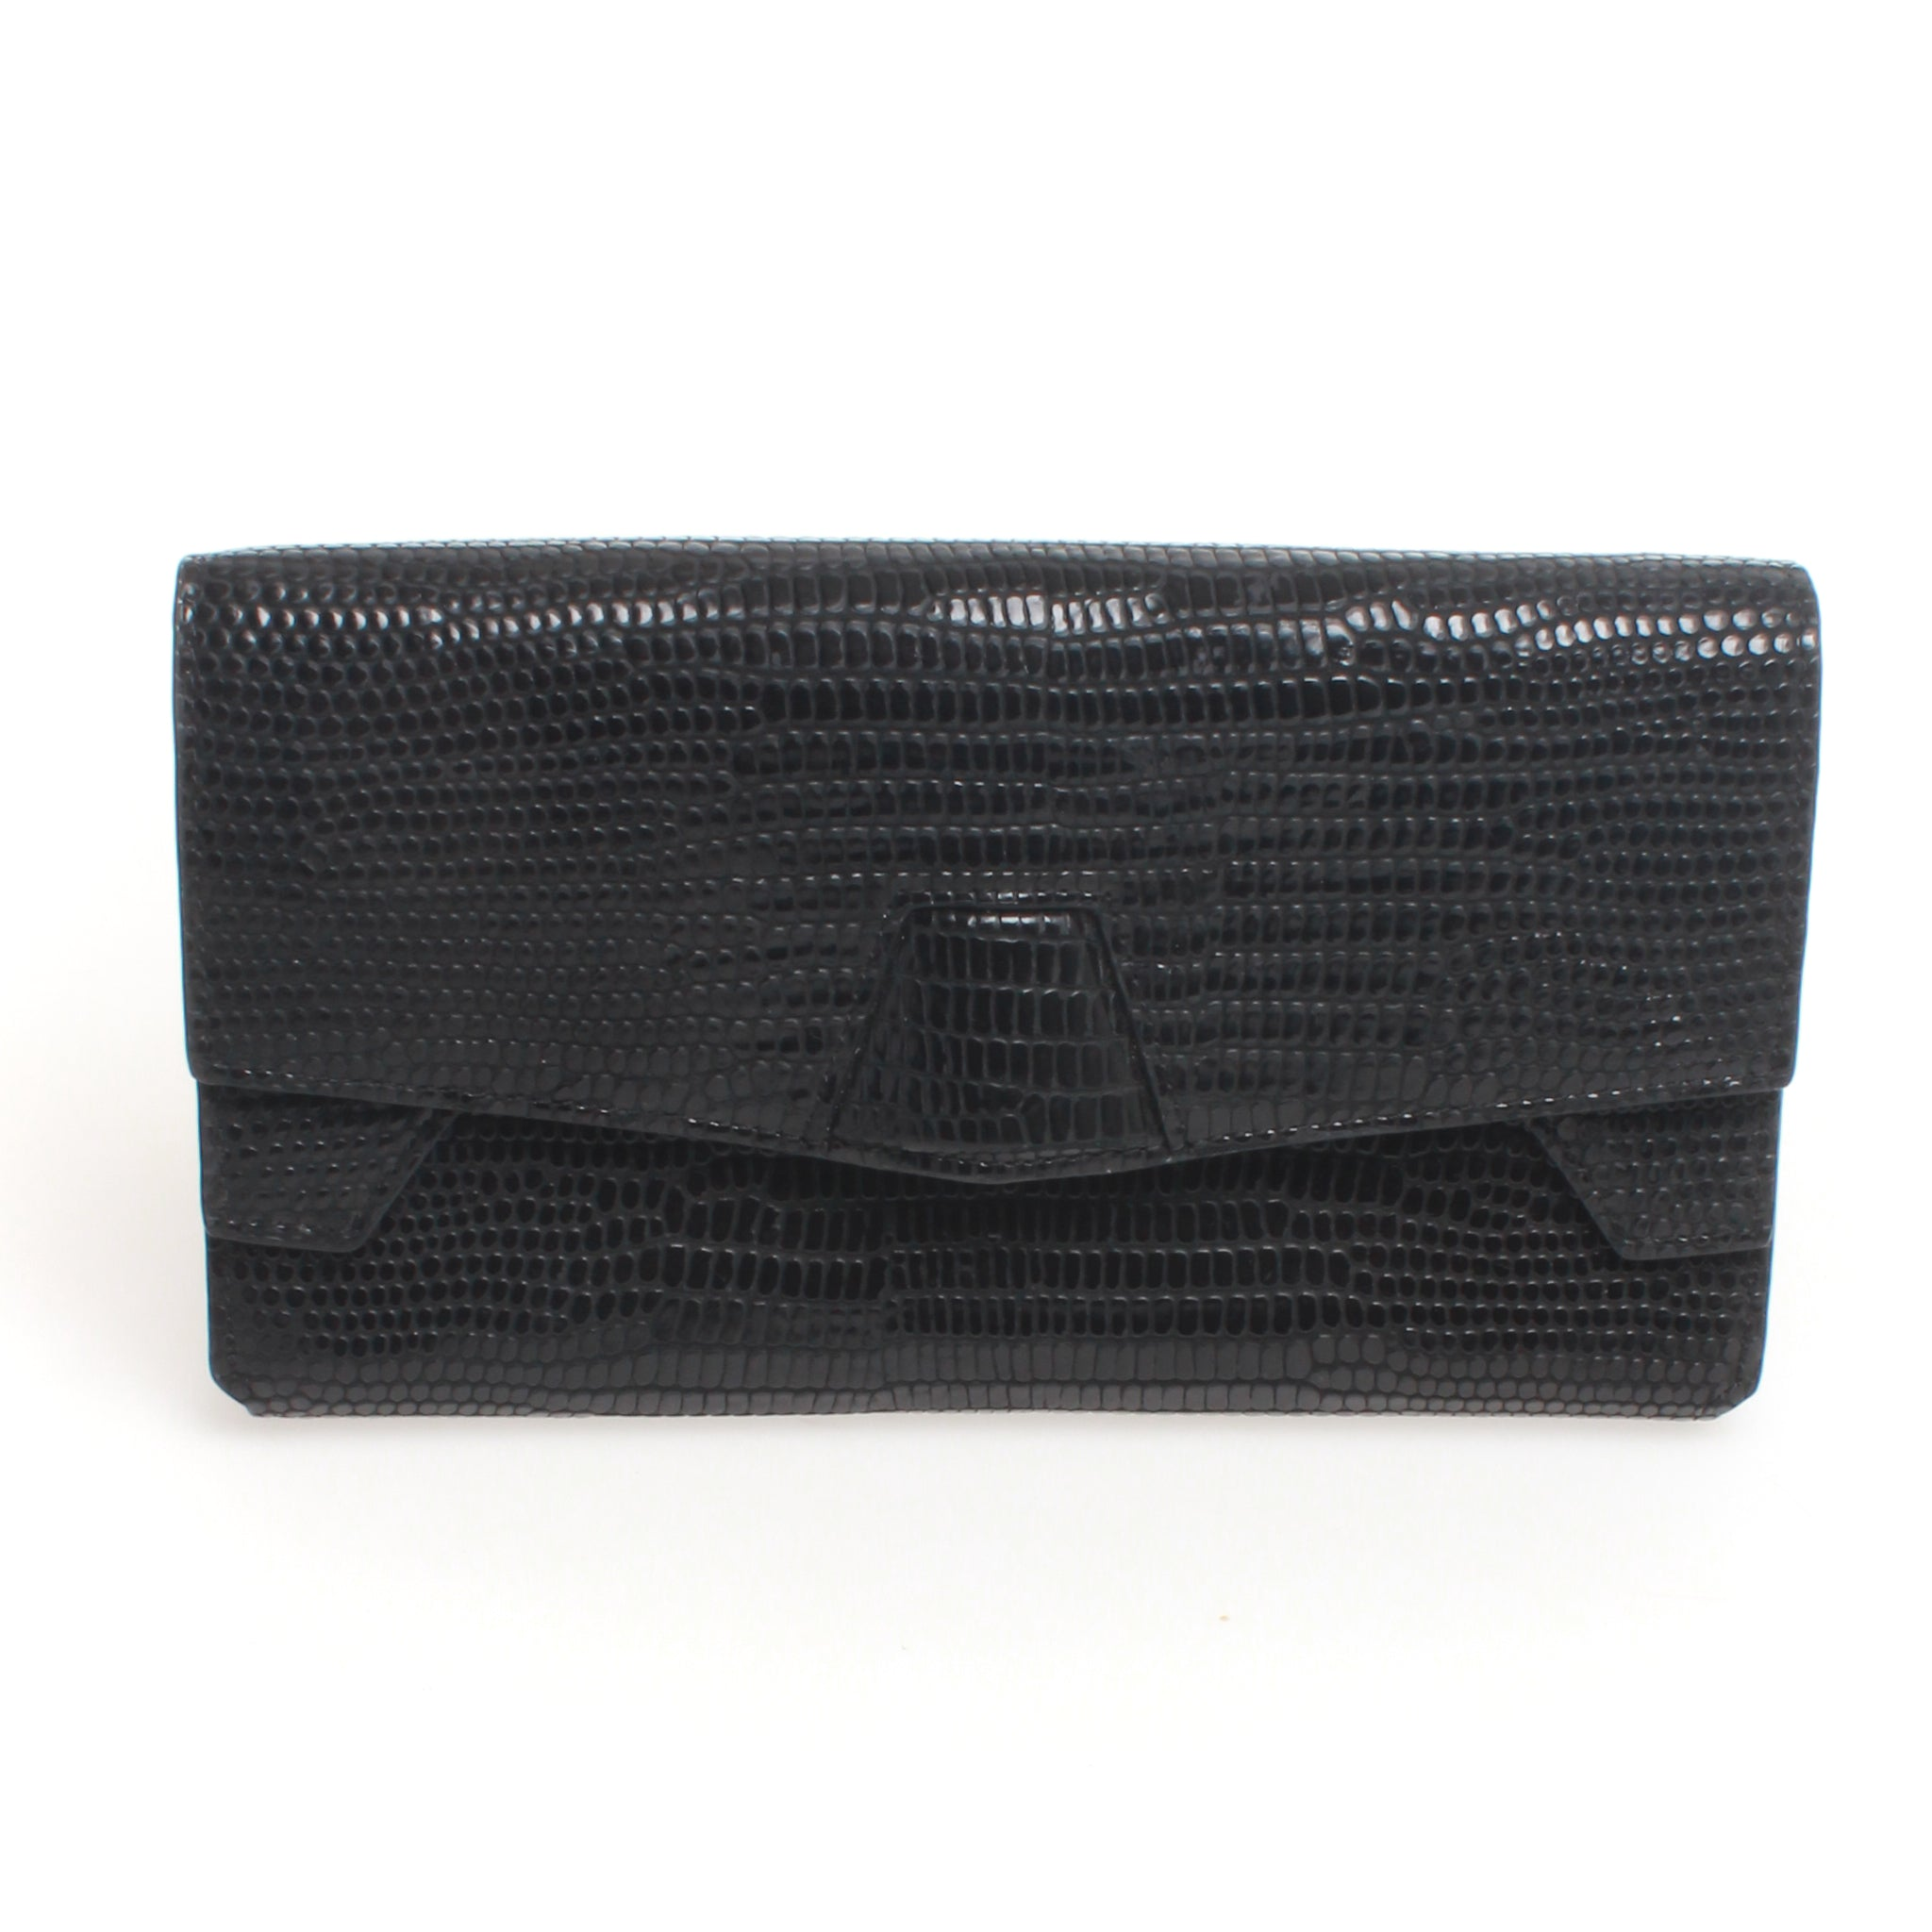 Alexander Wang Clutch Bag